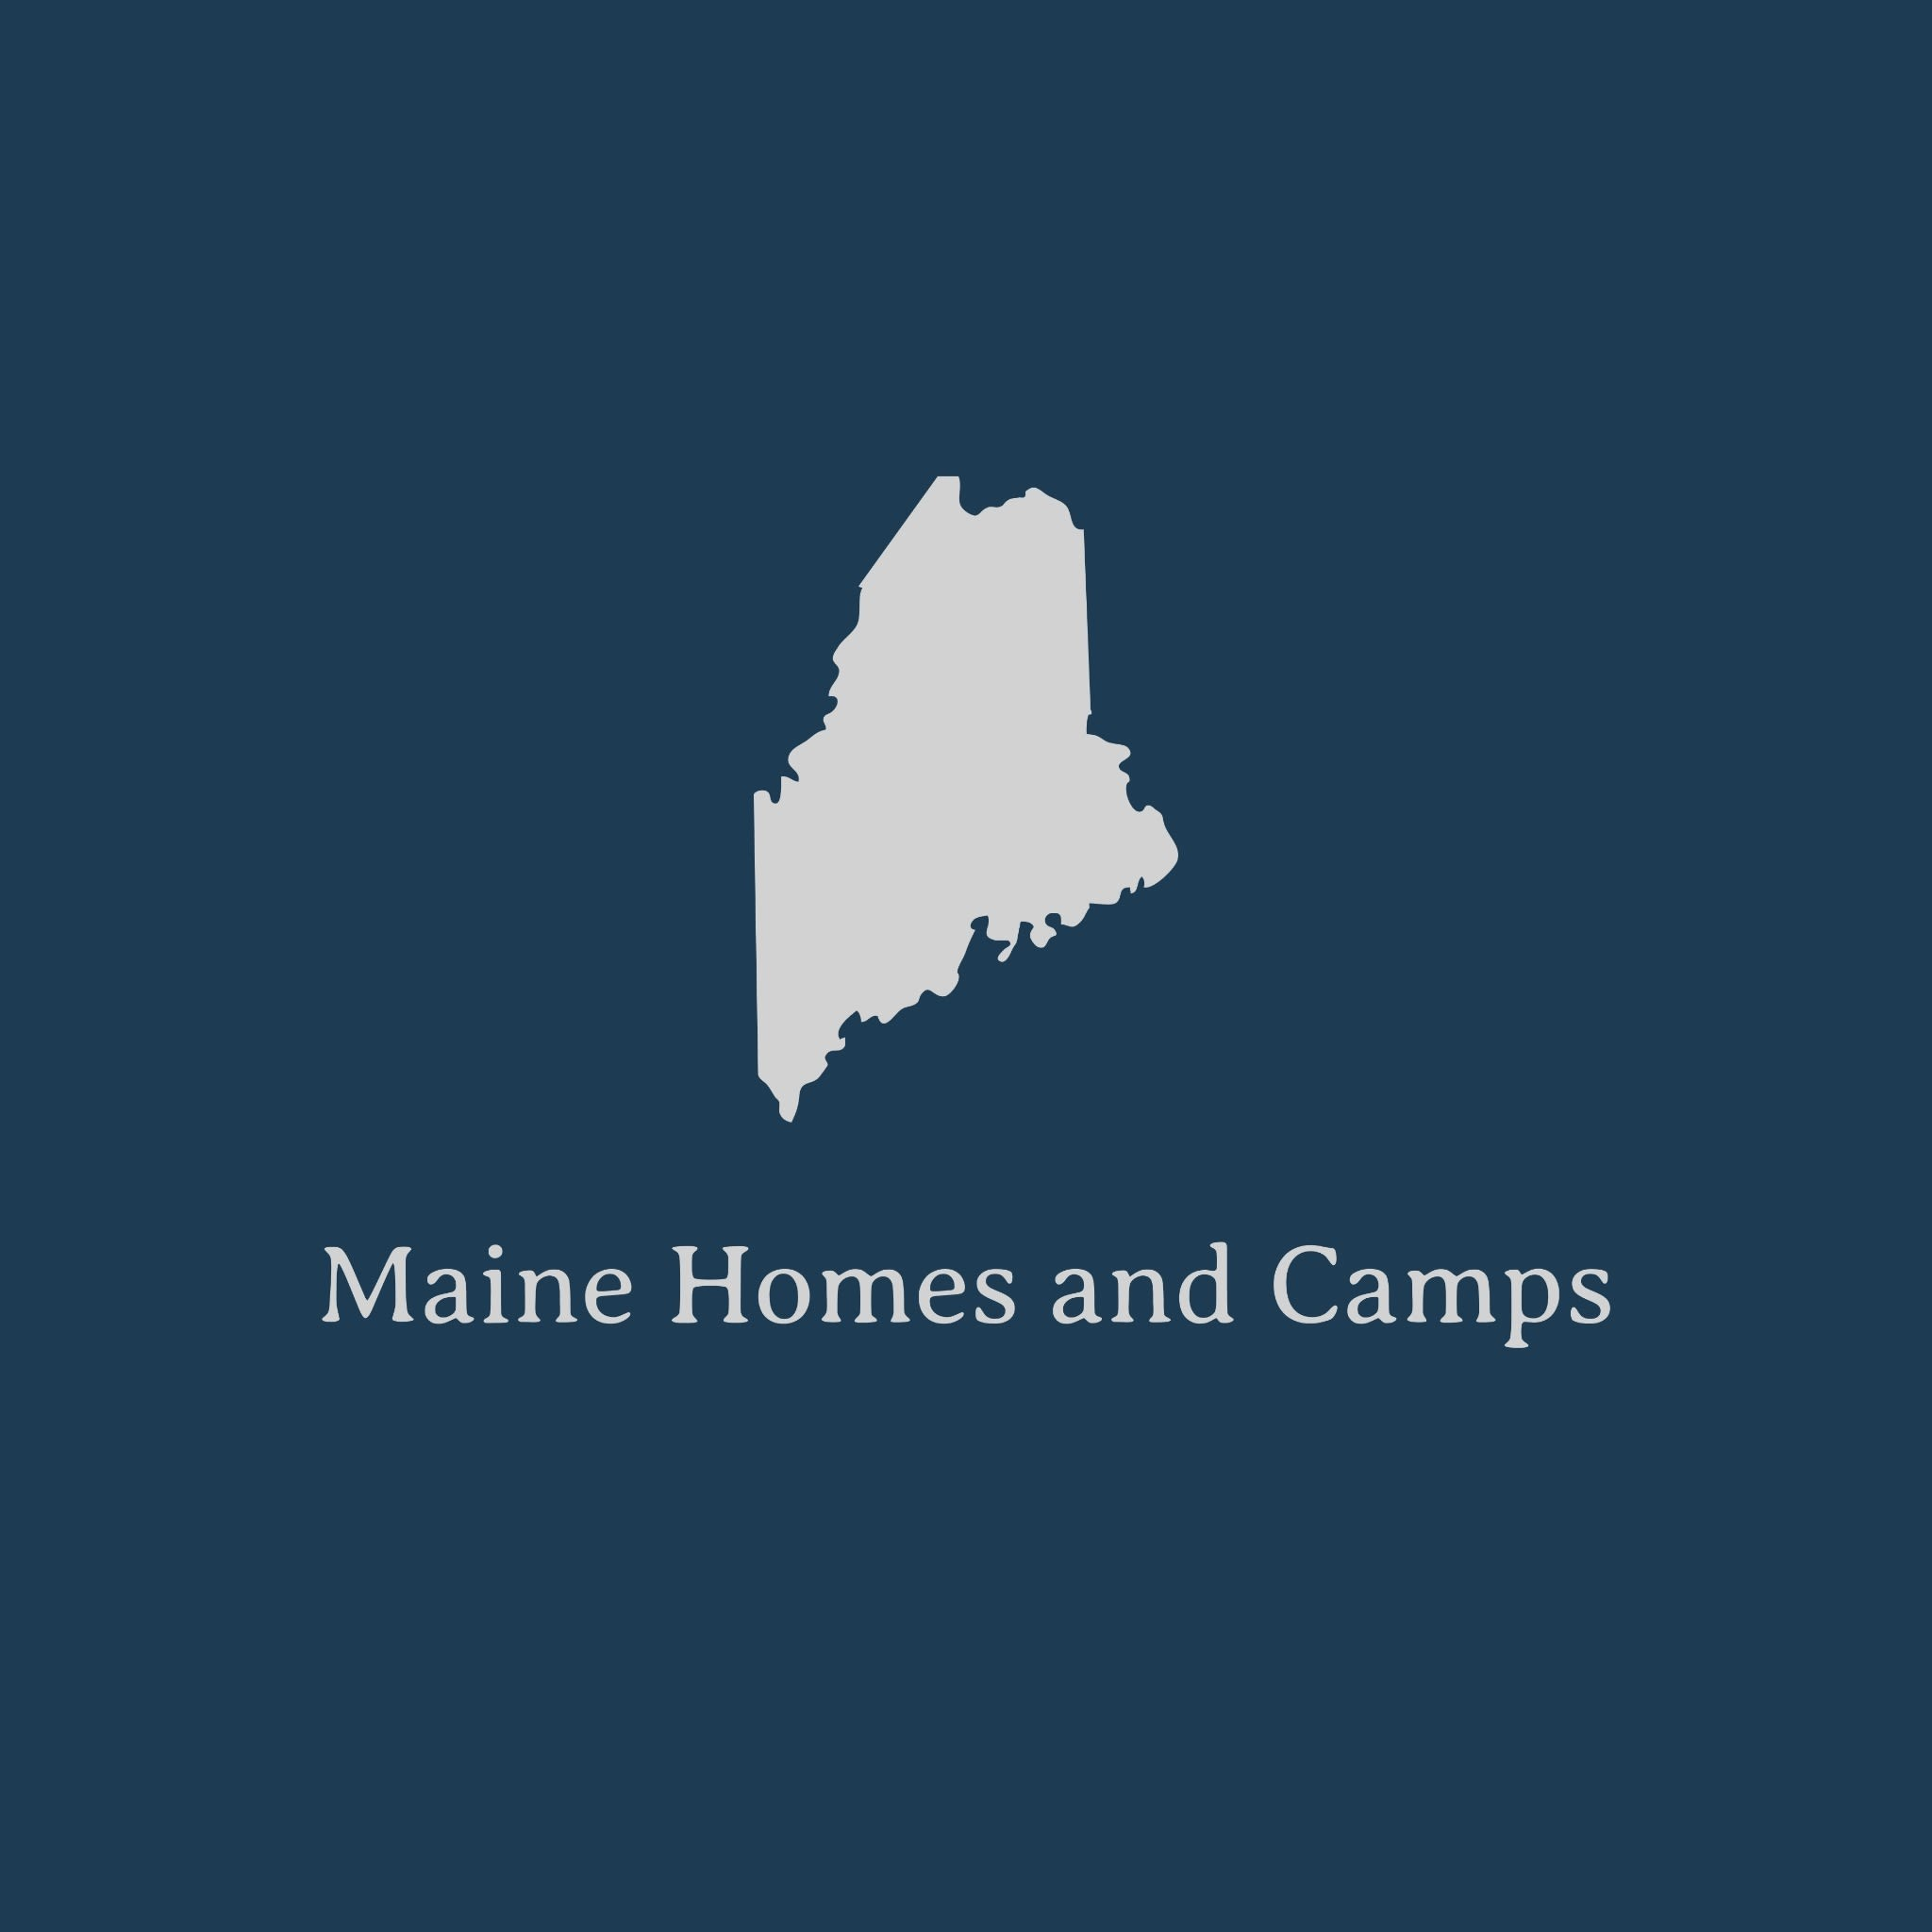 Maine Homes and Camps